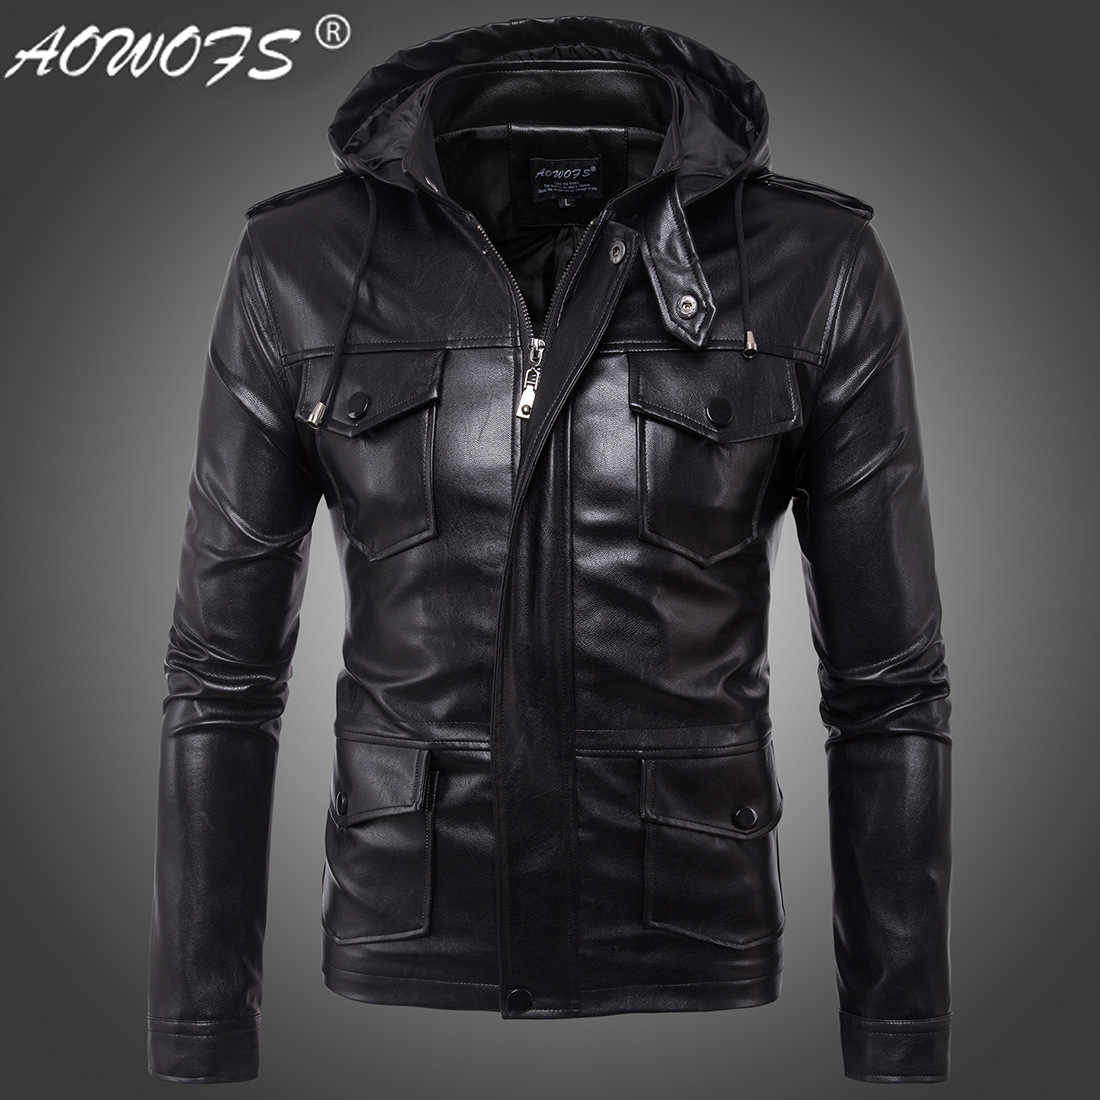 85a660dd3 The new 2017 hot leather jackets men's fashion European size new men's  leather hooded jacket